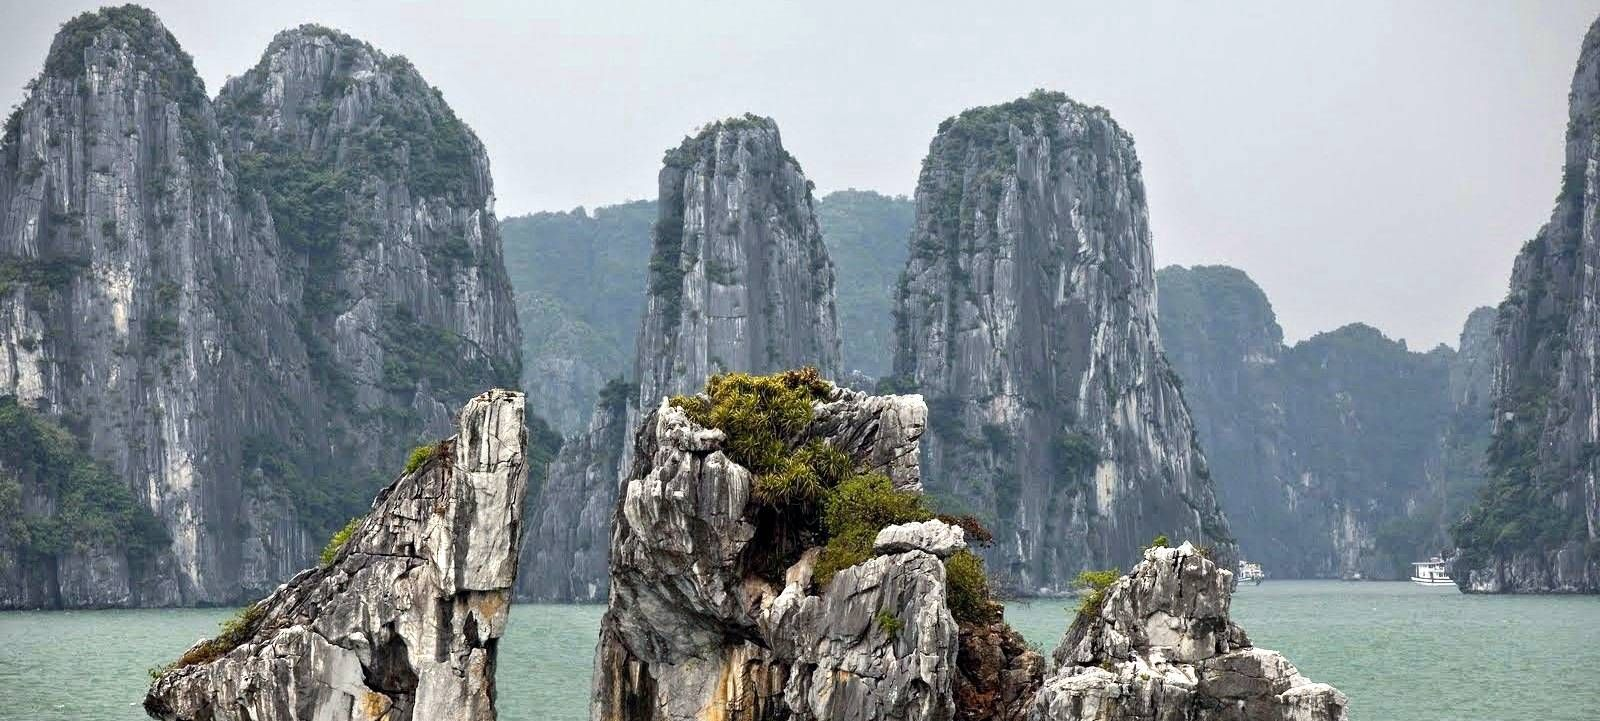 Vietnam is renowned for its beautiful landscape